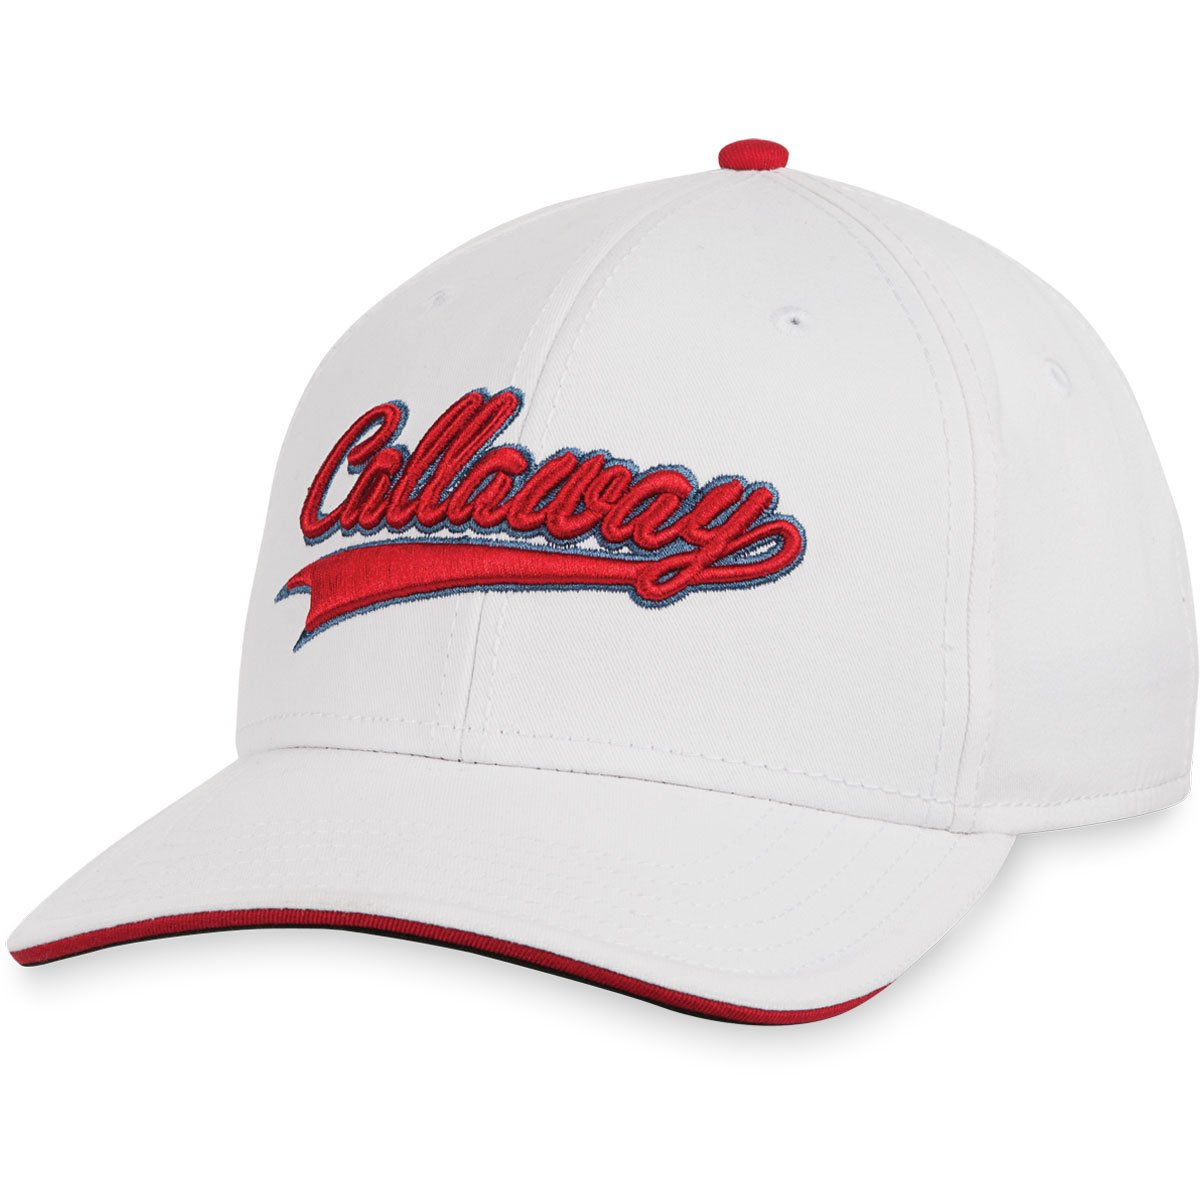 Amazon.com  Callaway Golf Men s Throwback Adjustable Golf Cap - One Size -  White Red  Sports   Outdoors 847e3e62c8d